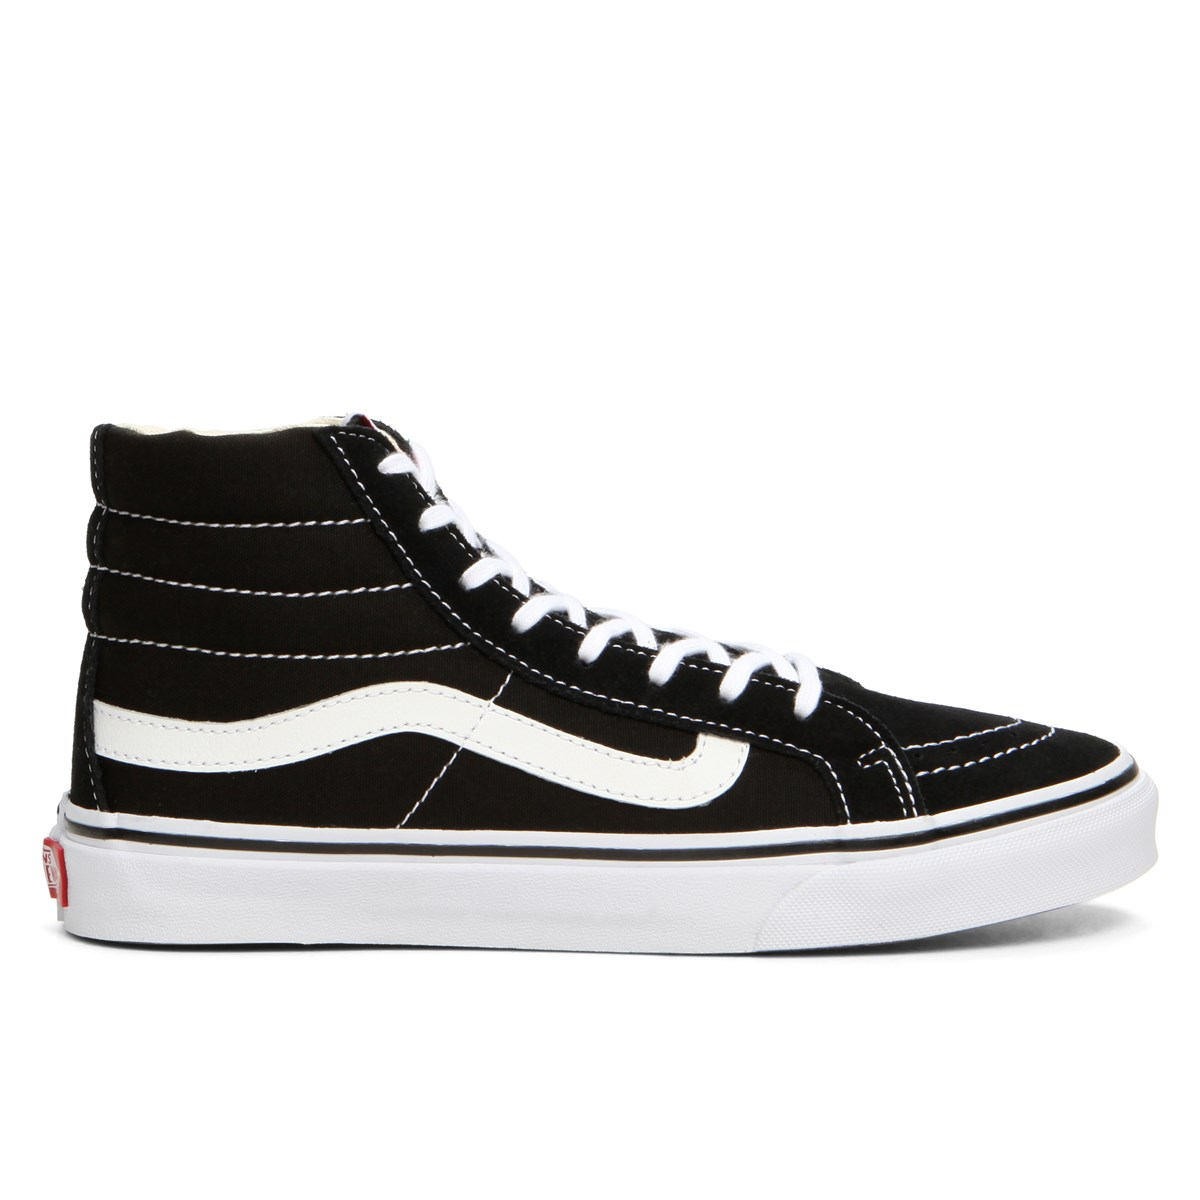 ddbbc58e936706 Women s Sk8 Hi Slim Black Sneaker. Previous. default view  ALT1  ALT2